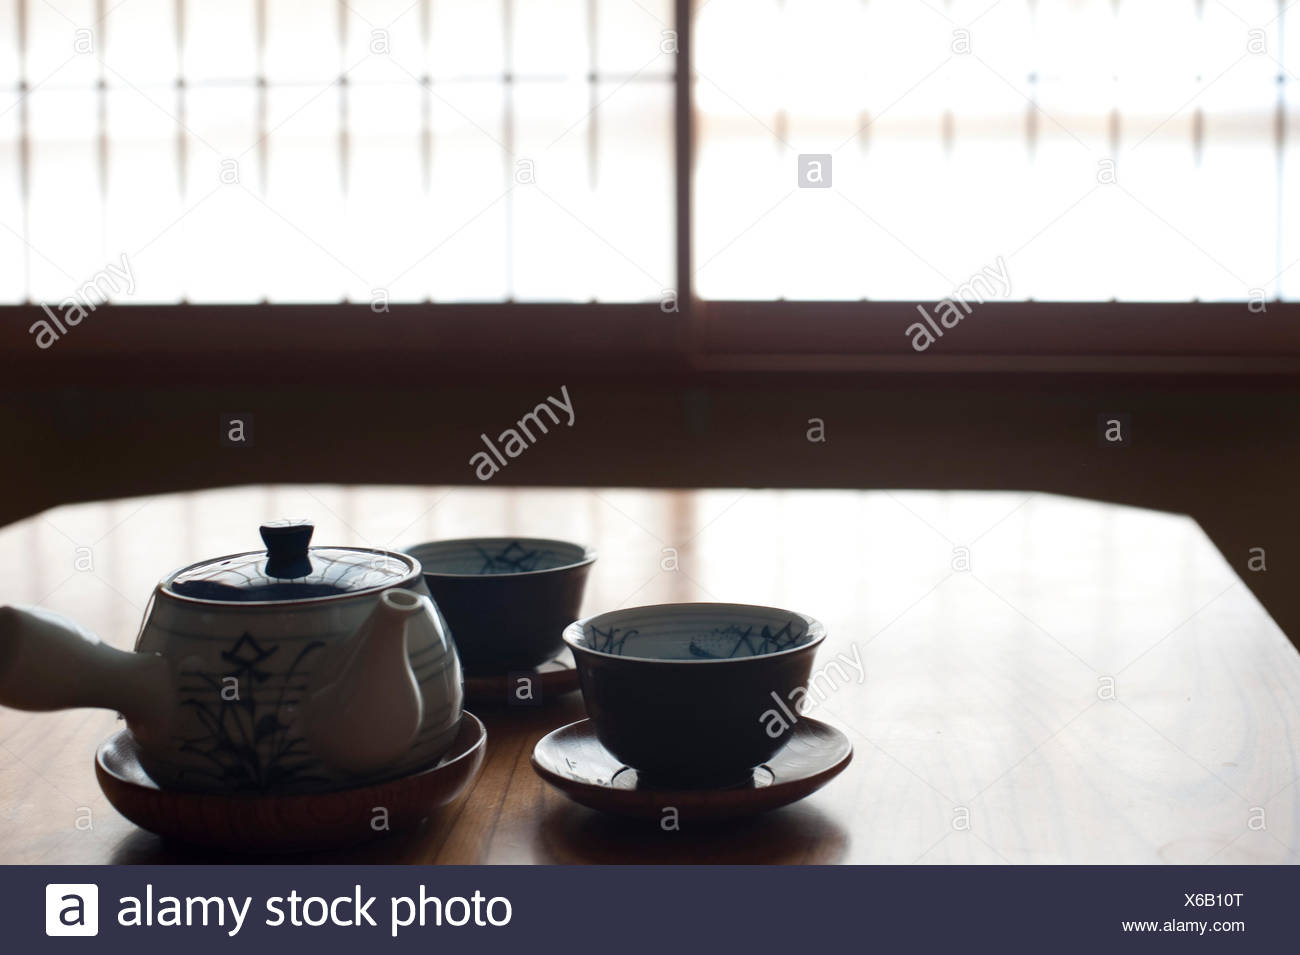 a silhouette image of two japanese tea cups and a tea pot with a